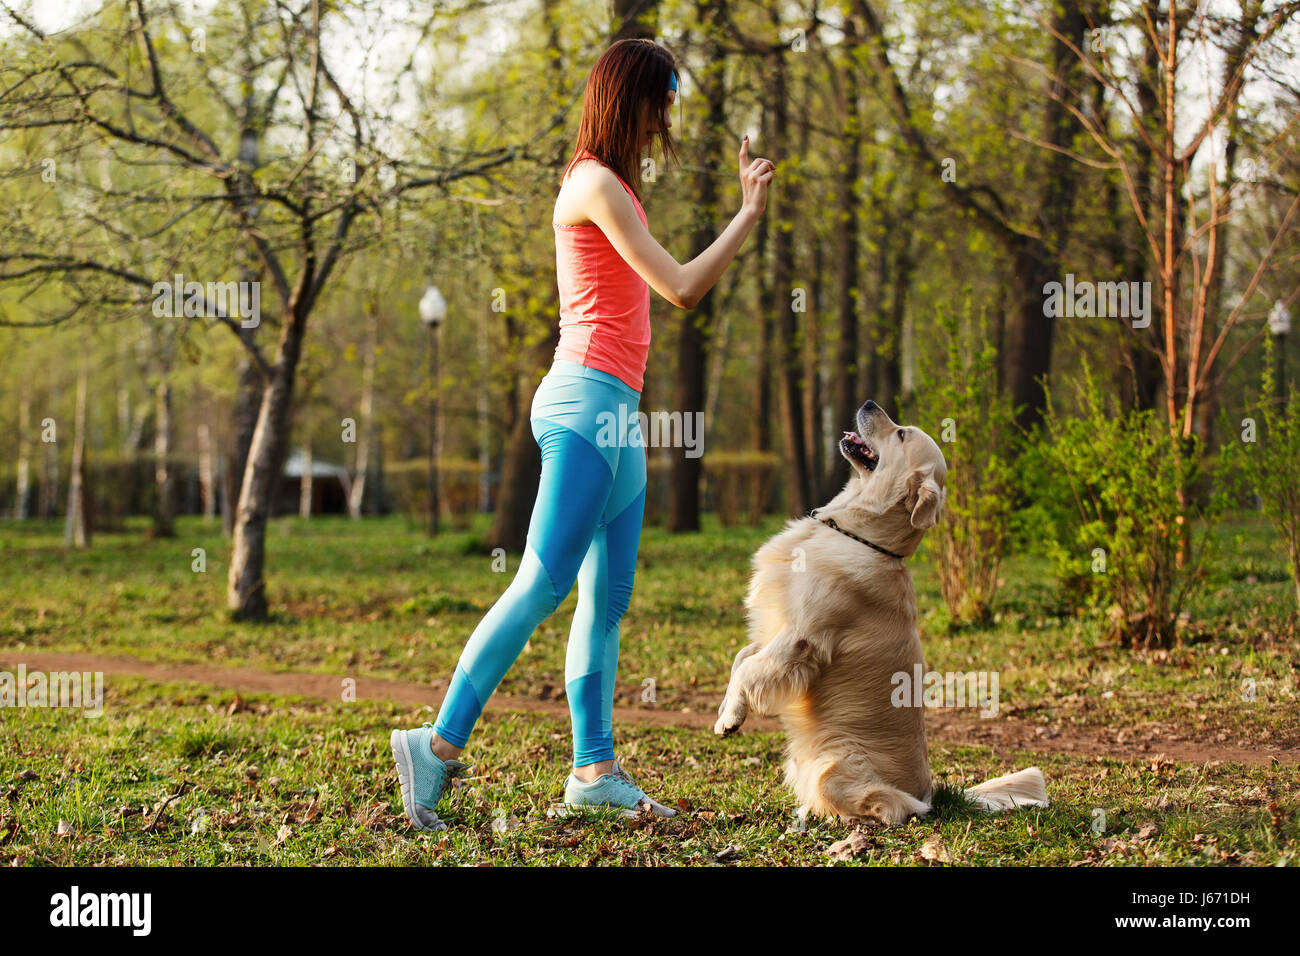 Labrador performs commands of girl - Stock Image